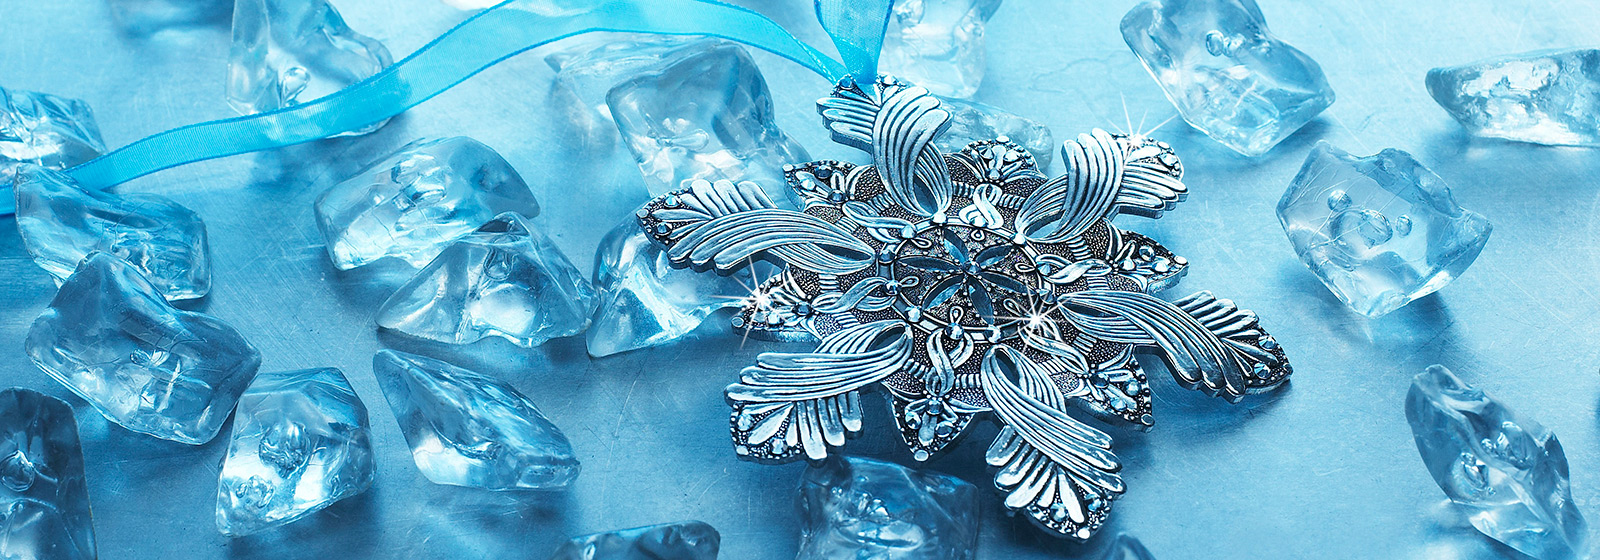 Snow Crystal Swarovski Christmas Ornament